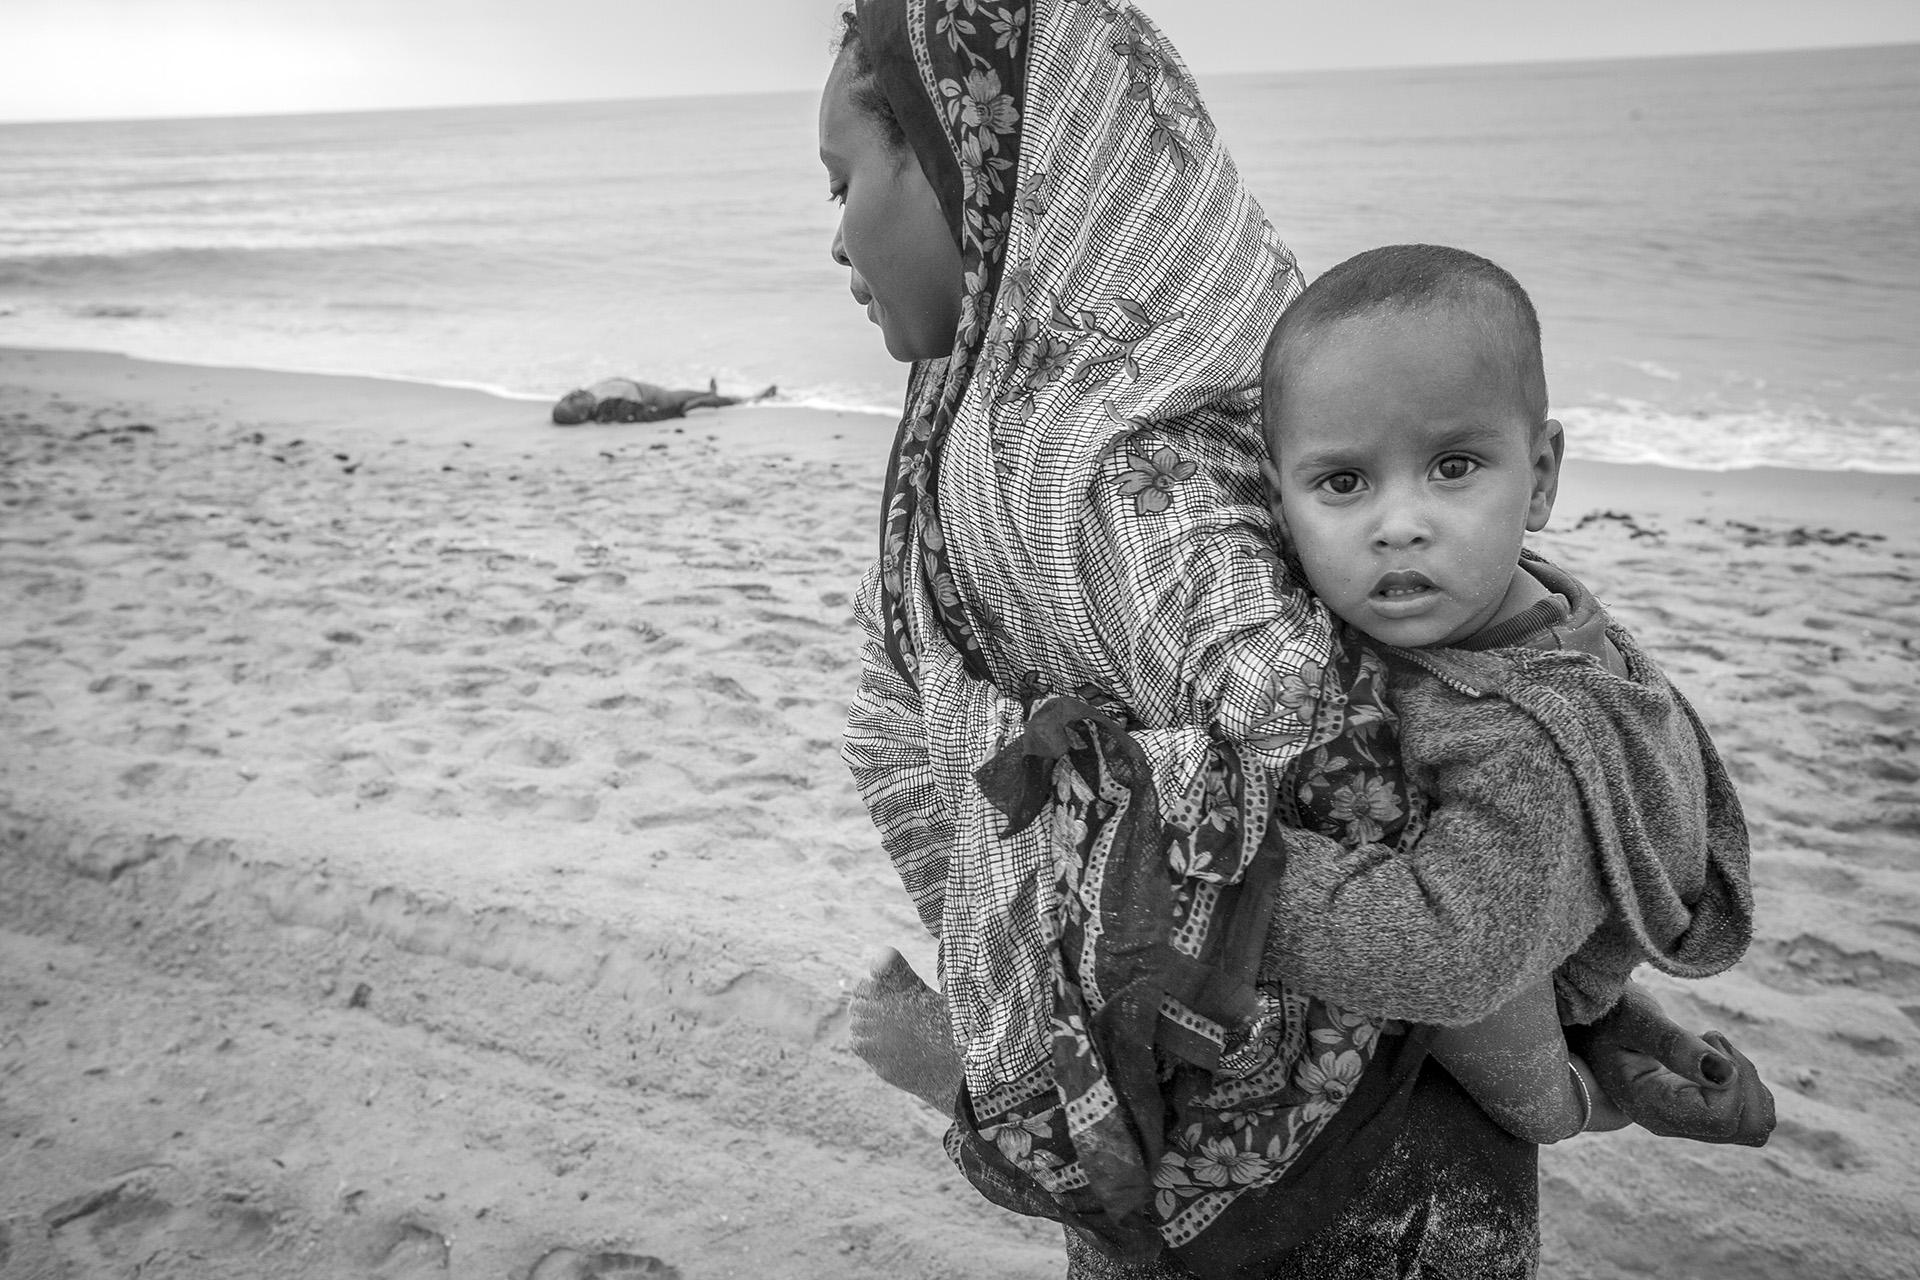 Fadua Ibrahim Haj Mohamed from Ethiopia walks along the beach she just reached in search of her older sister on December 1, 2008 near the town of Afwar on the Yemeni coast. She is carrying Riyadh Mukhter Sutlan, 1 year and 5 month old, the son of her missing sister. After exhausting the search, she believed that her sibling was dead, however Fozia Ahmed Hoshin, was rescued by fishermen and united with her family at a reception center.